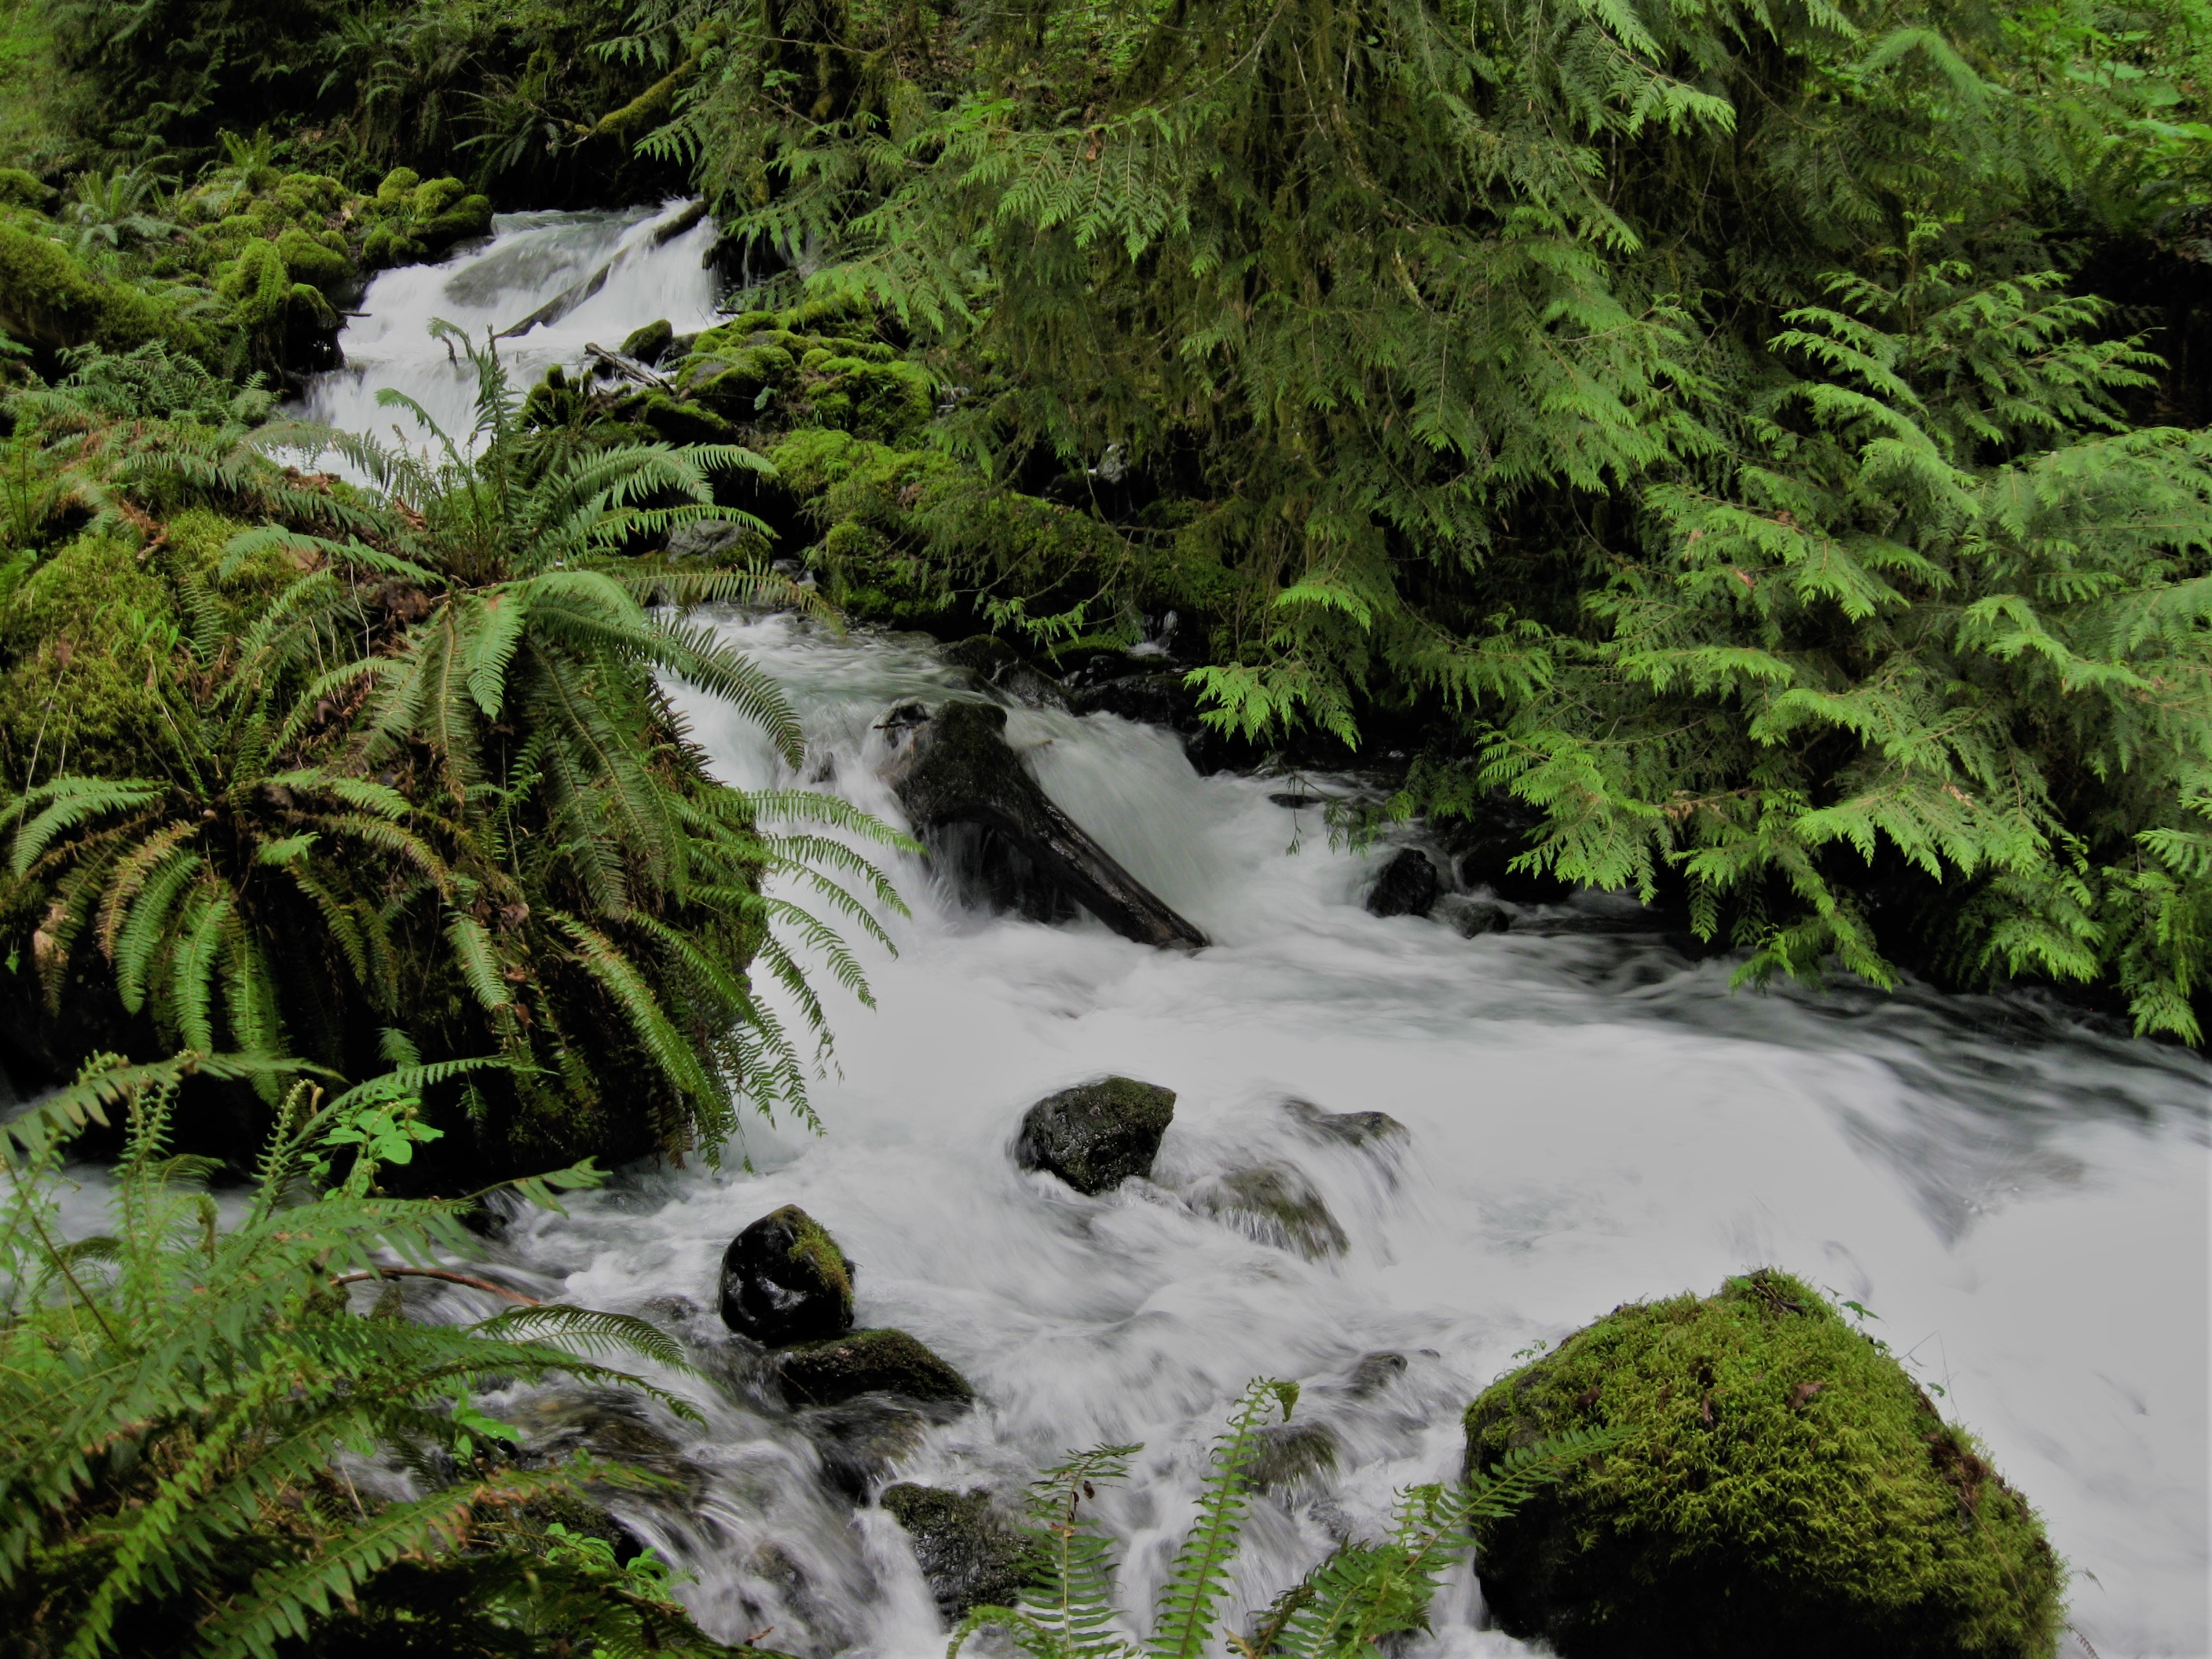 Less than a mile from the parking area, Barr Creek cascades through lowland forests. Photograph credit: Skagit Land Trust staff.